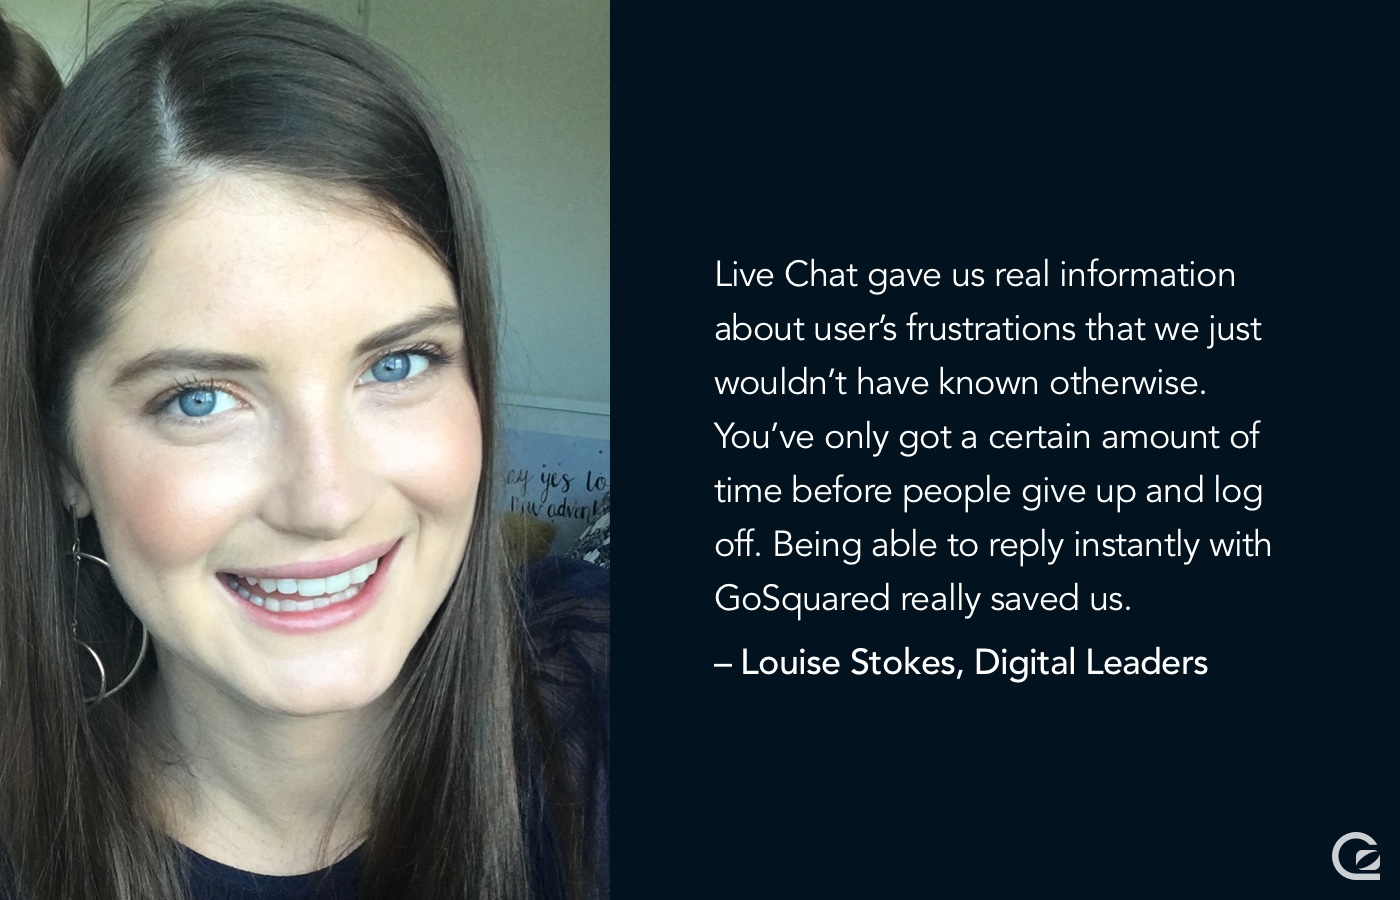 Louise Stokes from Digital Leaders